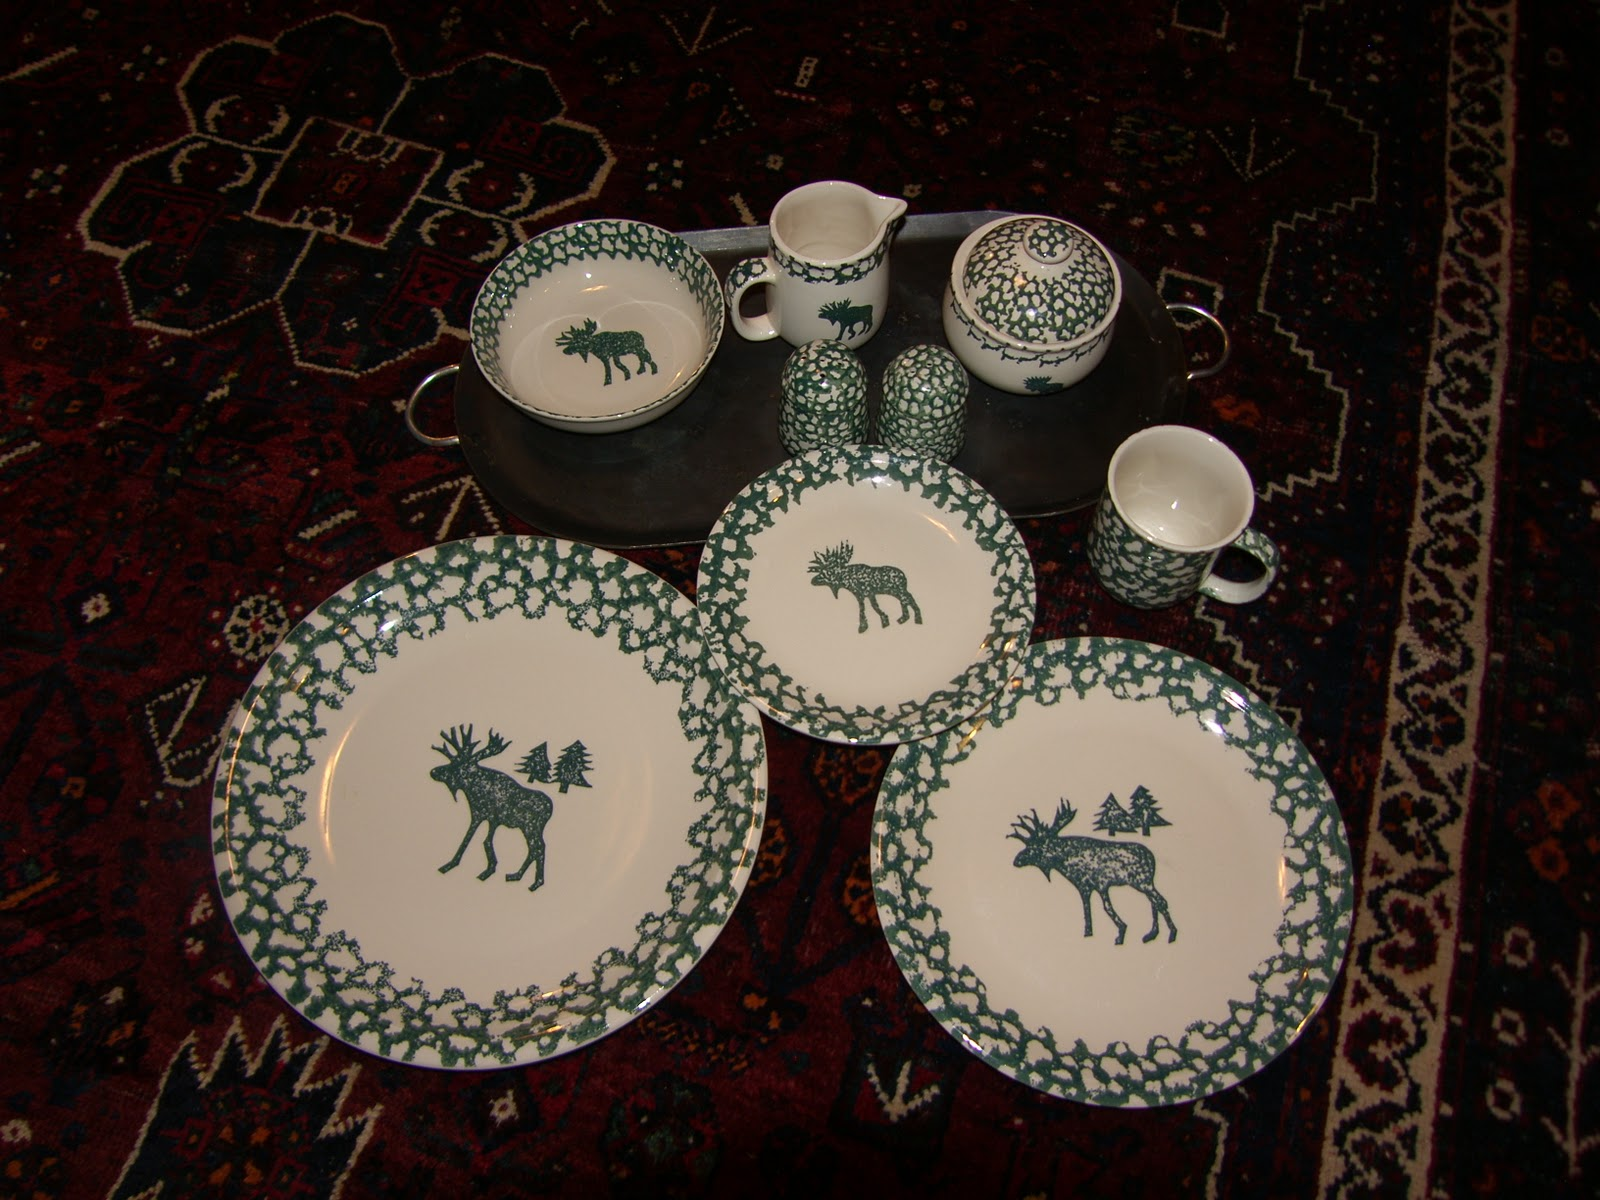 Big Miow S Little Shop Tienshan Moose Dishes Sold